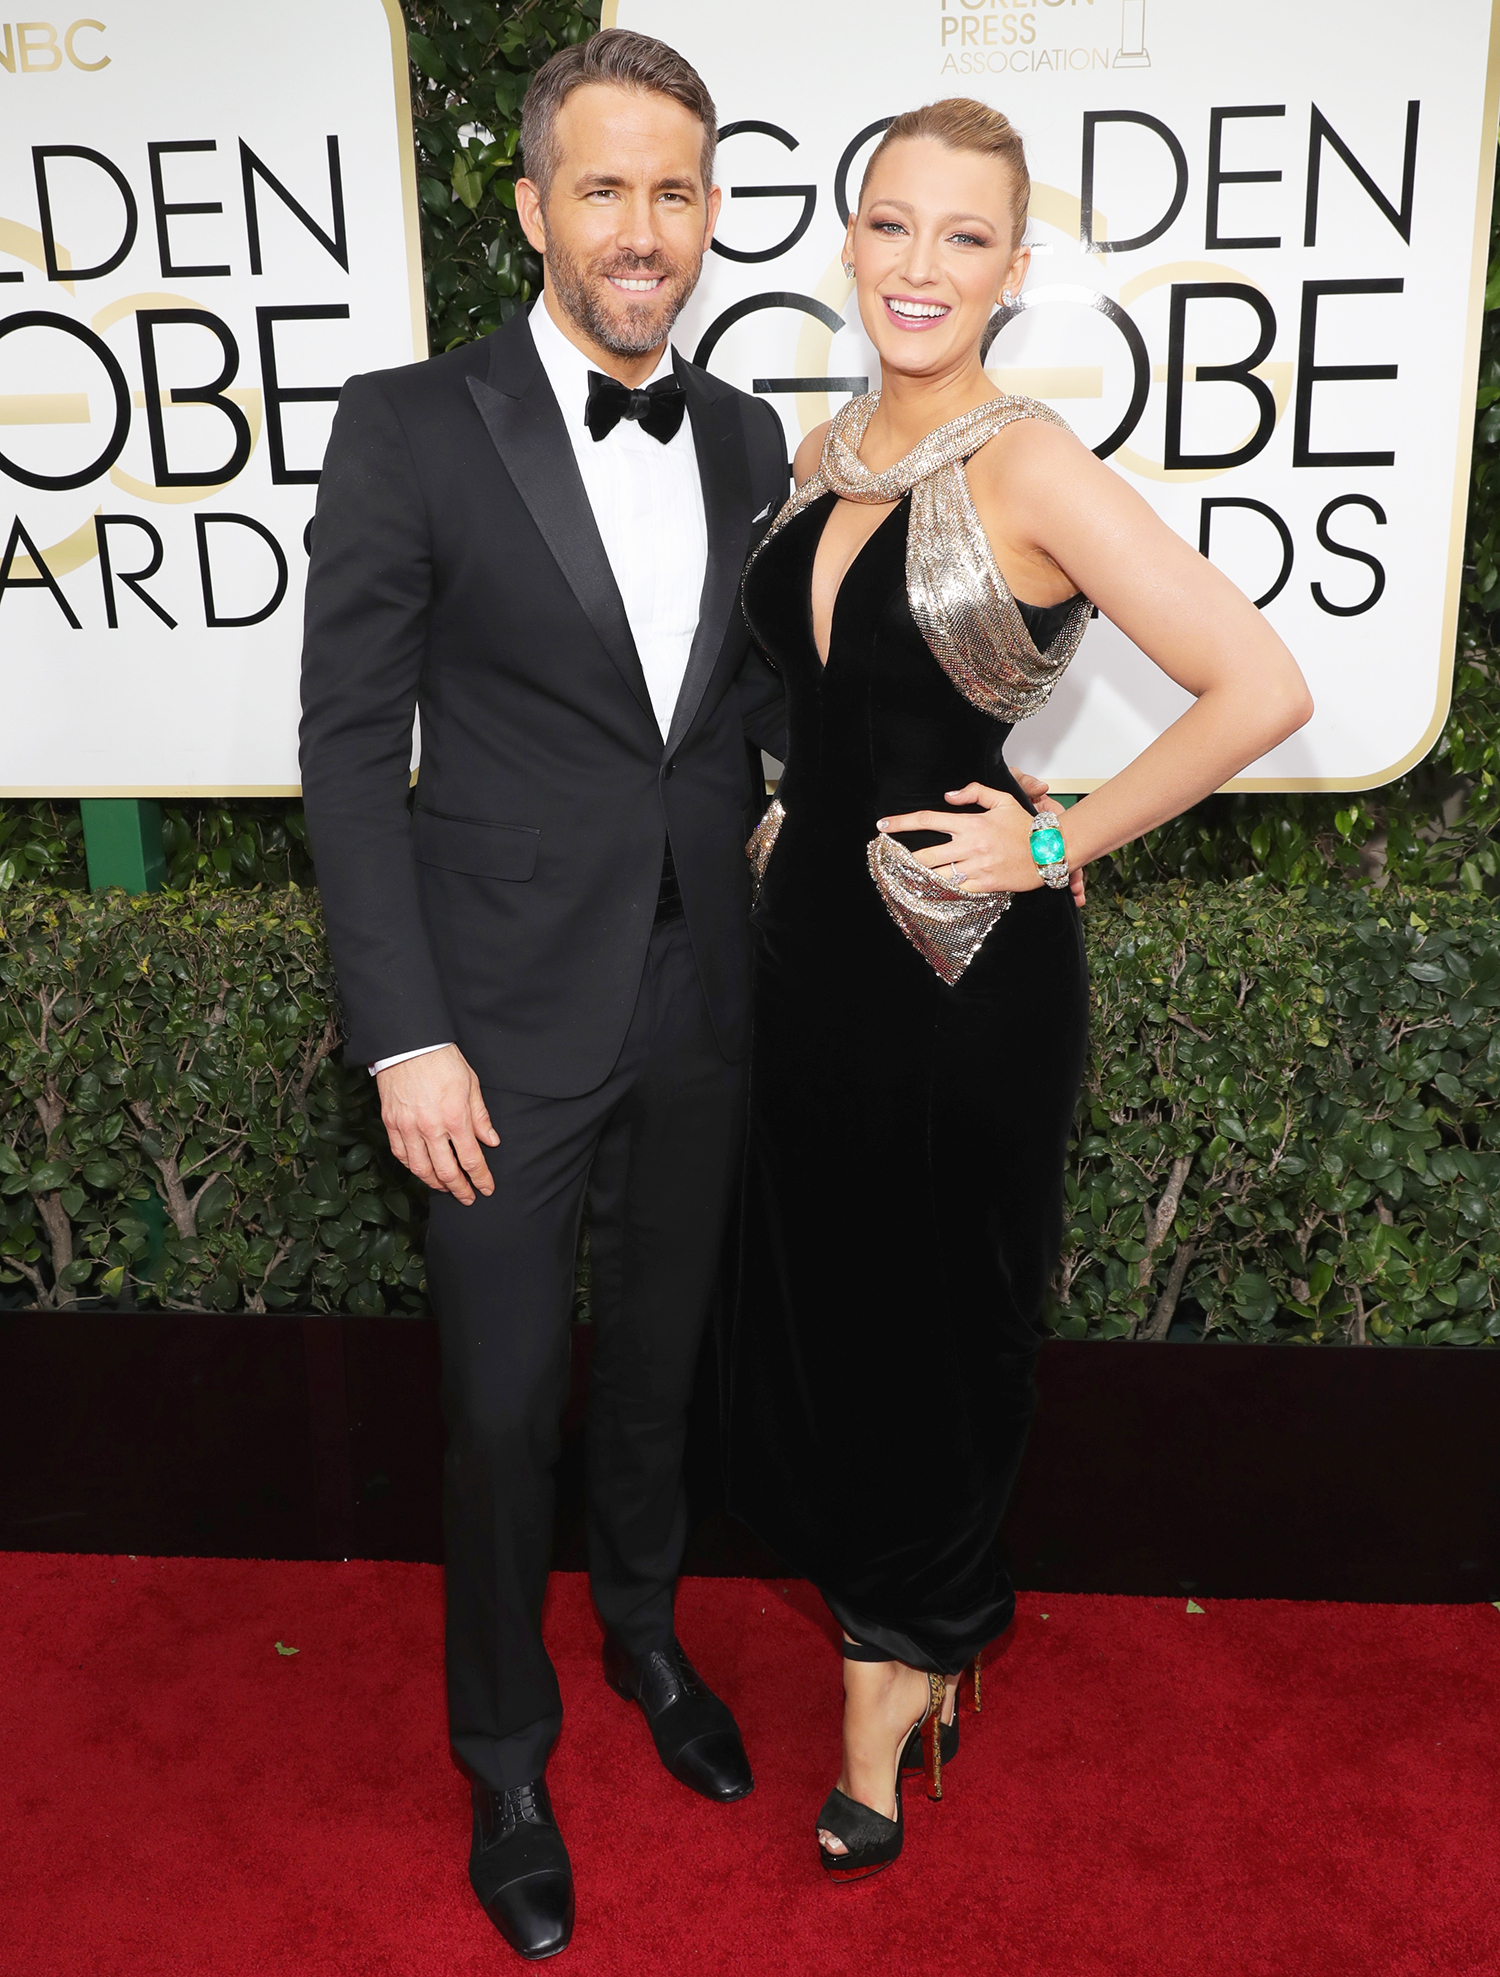 Ryan Reynolds and Blake Lively arrive at the 74th Annual Golden Globe Awards held at the Beverly Hilton Hotel on Jan. 8, 2017.